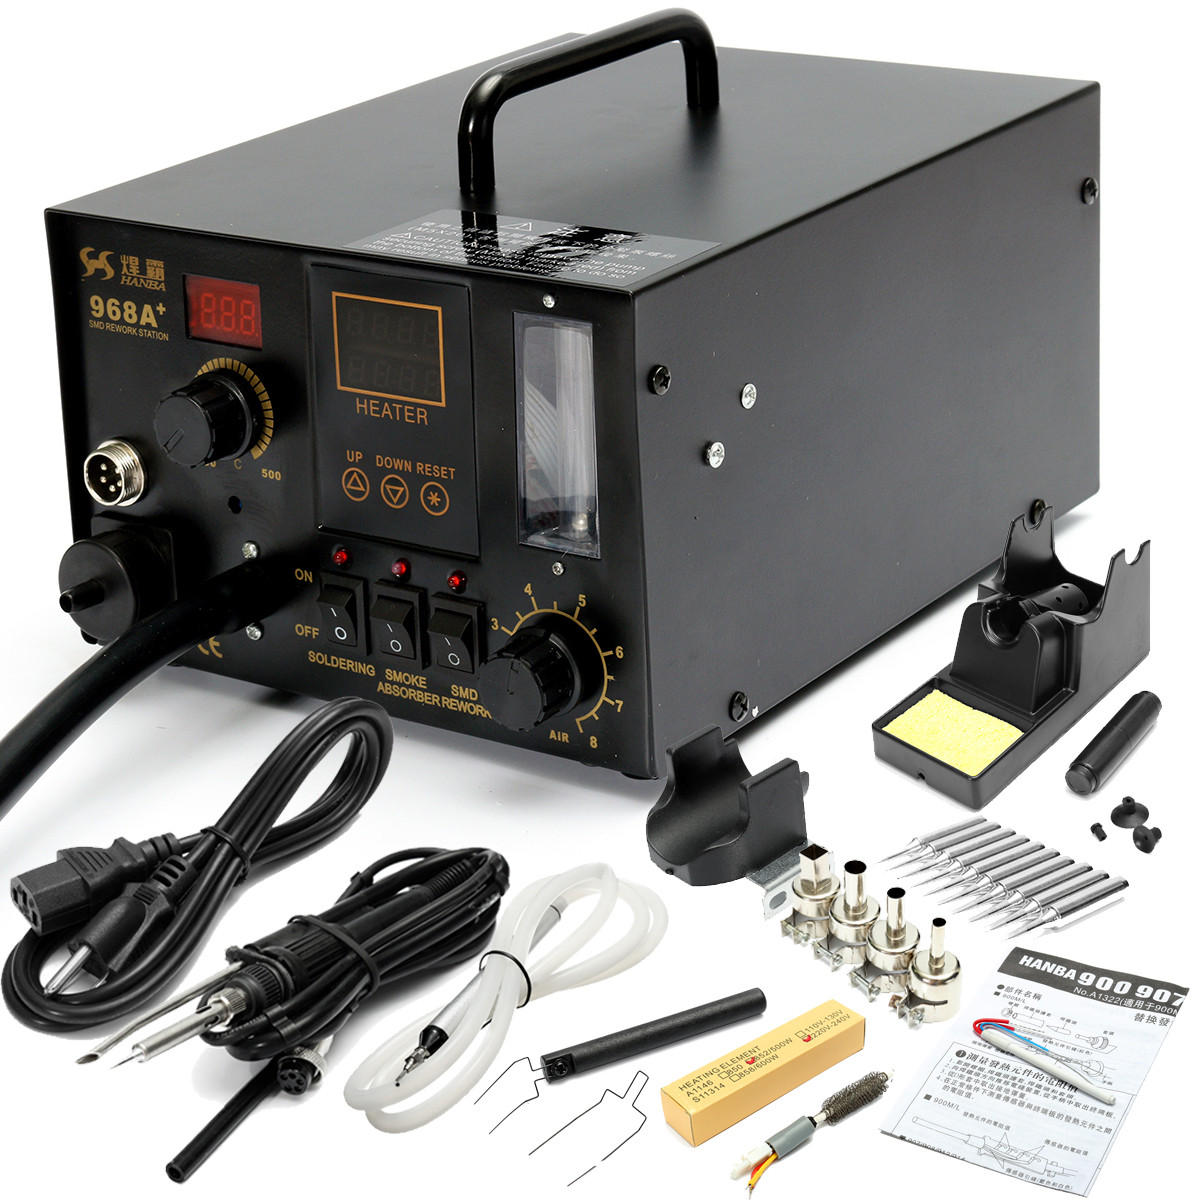 4 in 1 Digital Soldering Iron /& Hot Air Station Complete Kit Free Ship 968A